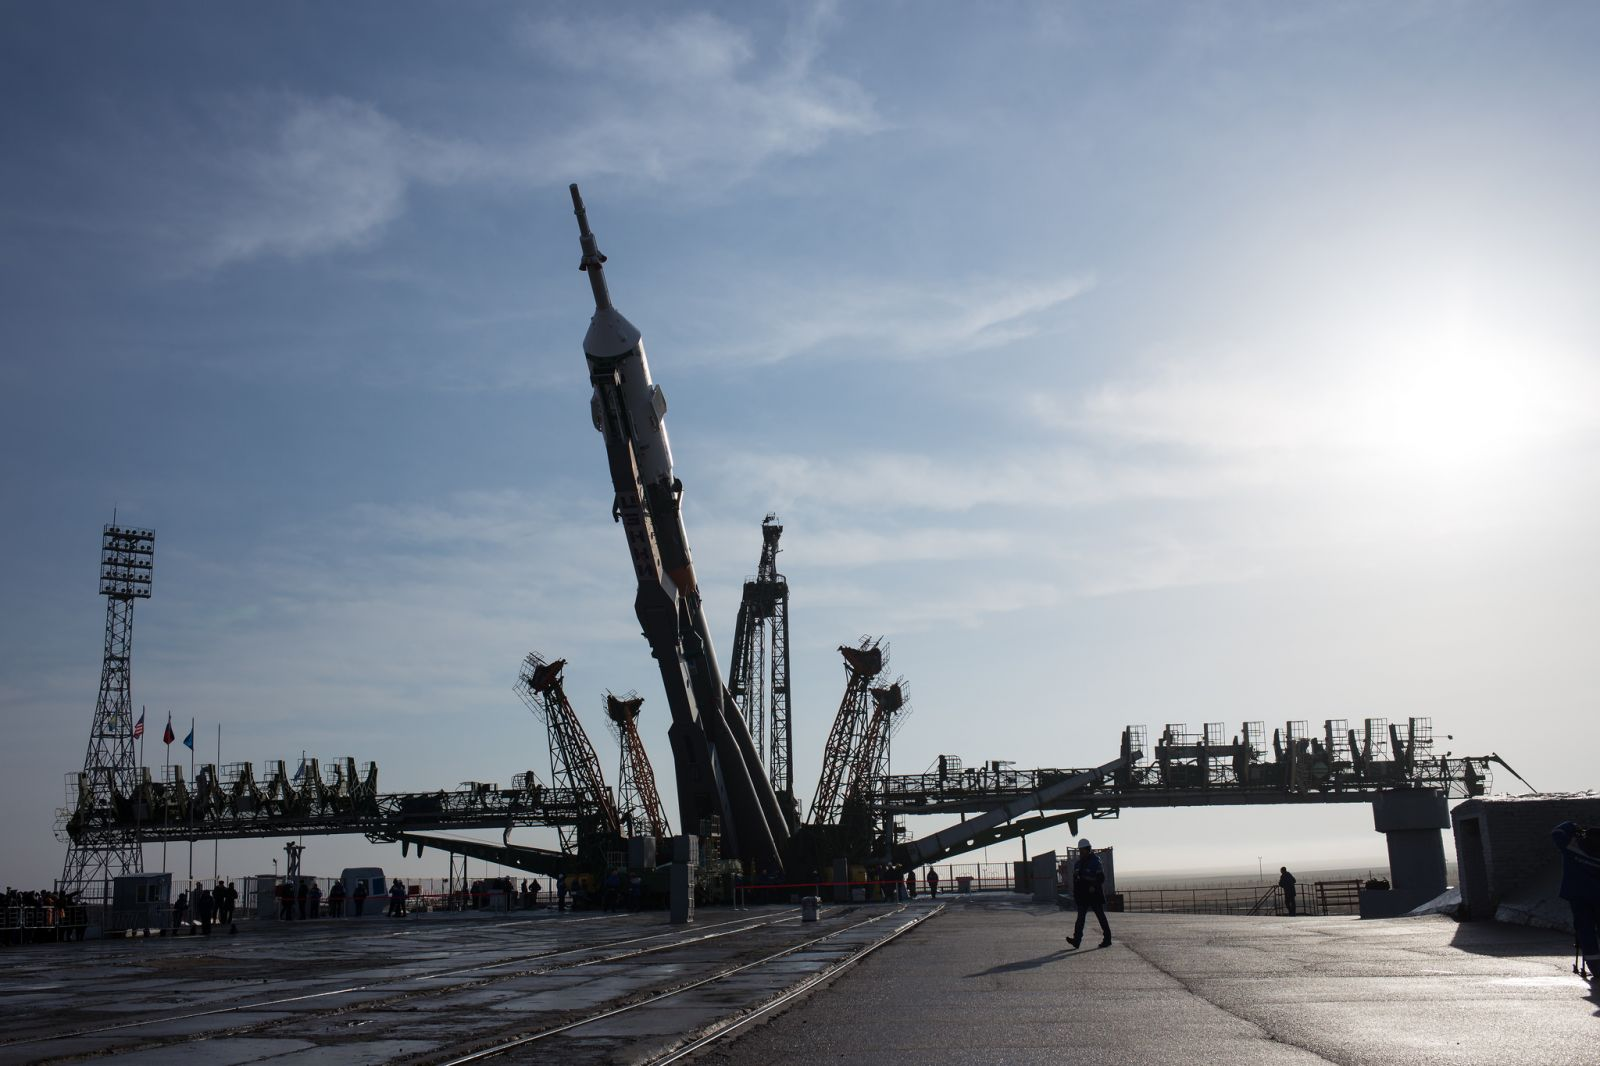 The Soyuz-FG rocket is lifted into the vertical position. Photo Credit: Joel Kowsky / NASA